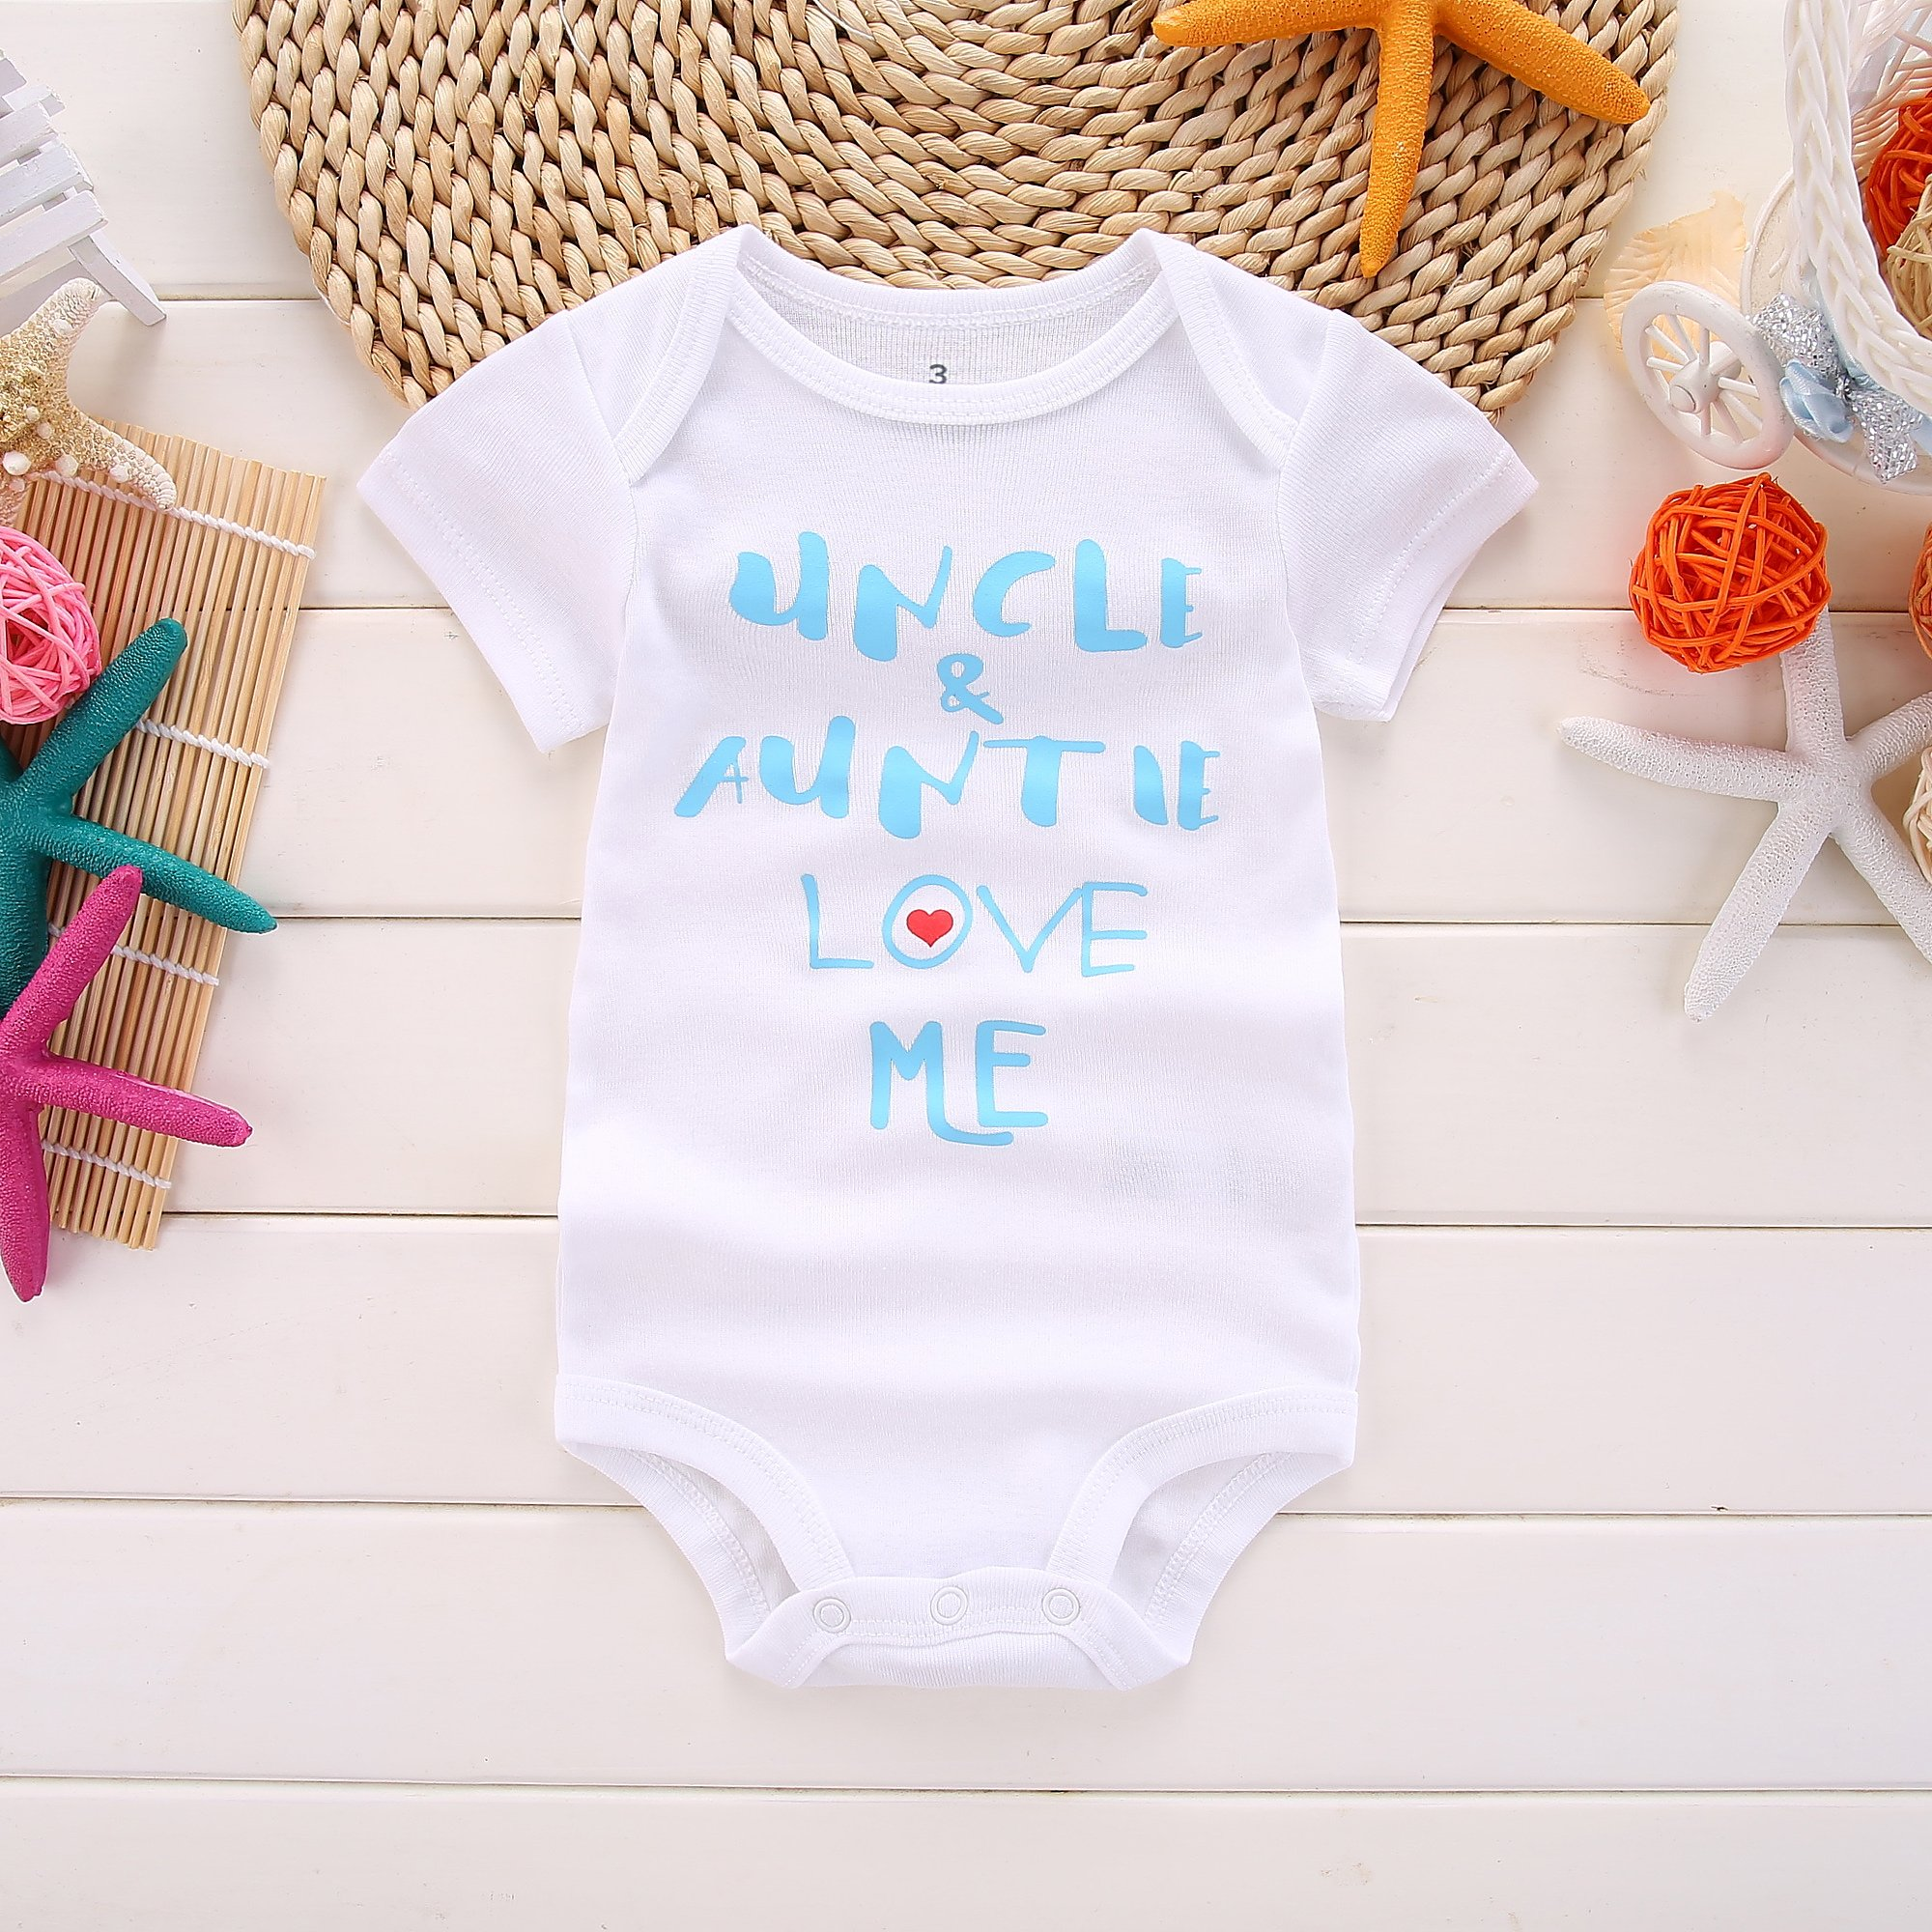 Winzik Newborn Baby Boys Girls Outfits Uncle Auntie Love Me Letters Print Baby Onesie Romper Jumpsuit T-Shirt (0-3 Months, White Blue) by Winzik (Image #2)